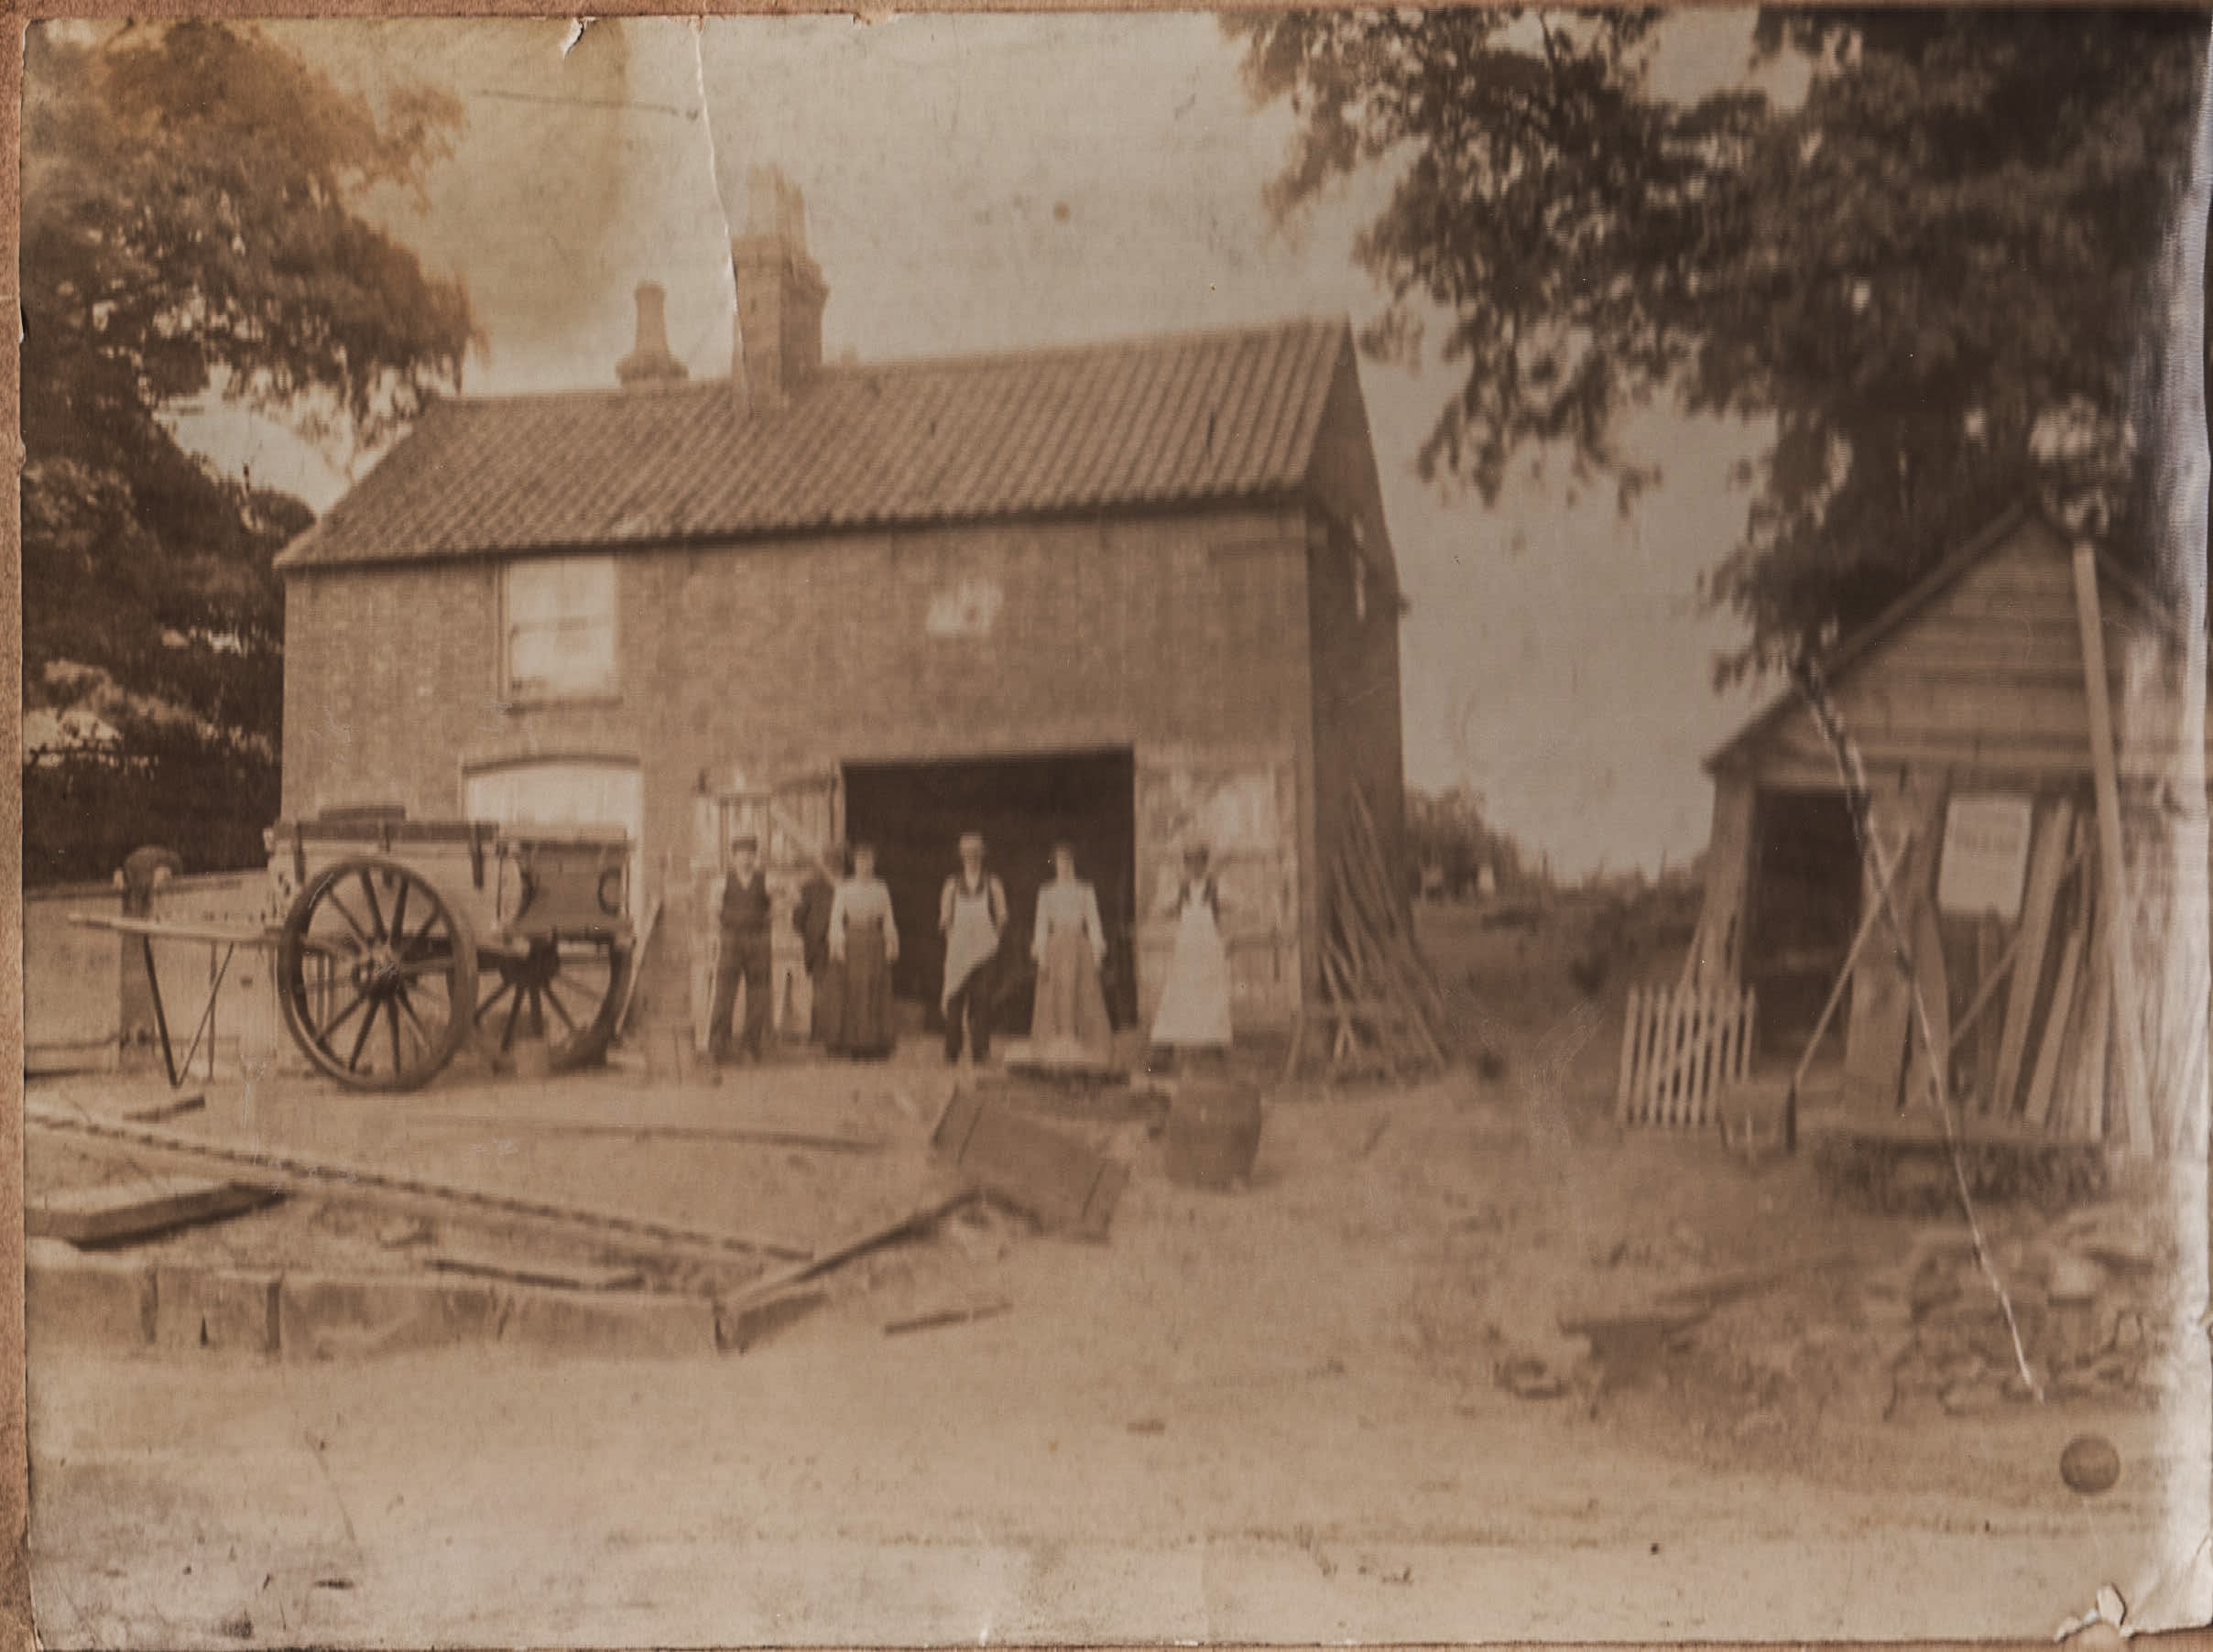 wheelwrights_shop-001_edited.jpg